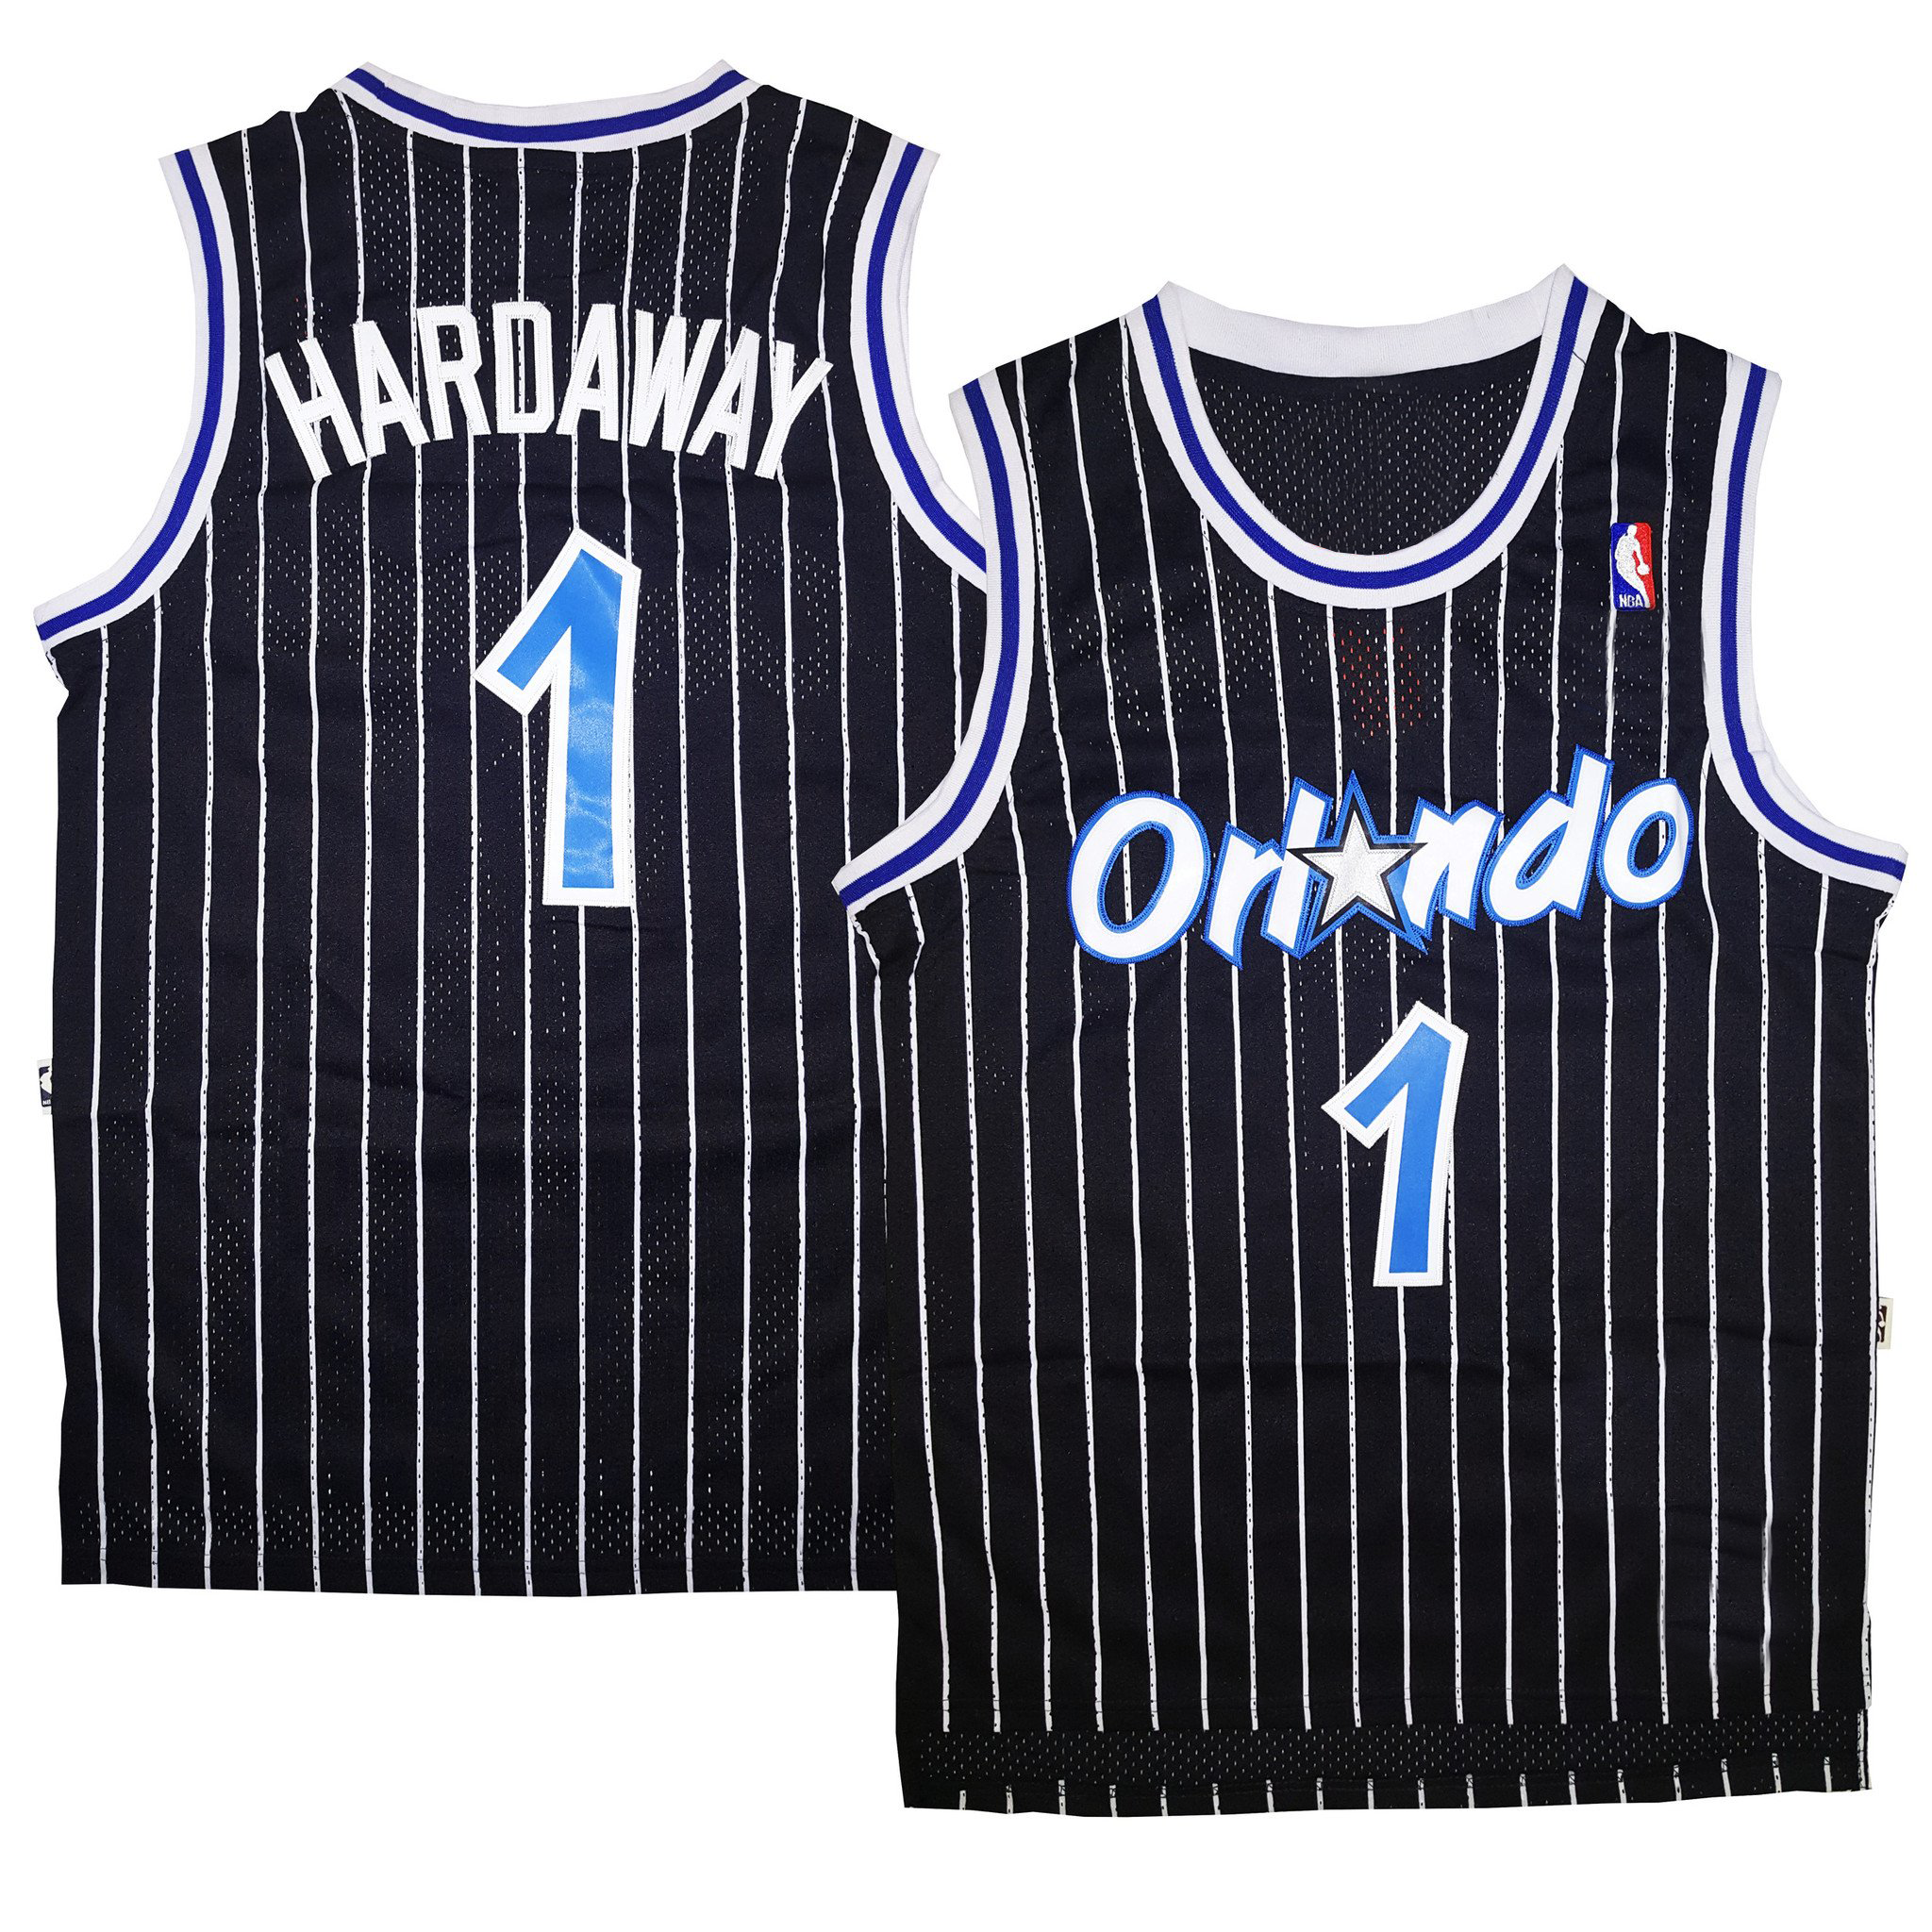 78a704aa2 ... Black Pinstriped Orlando 2017 New Cheap Wilt Chamberlain 13 Harlem  Globetrotters Throwback Basketball Jersey Blue Retro Stitched ...